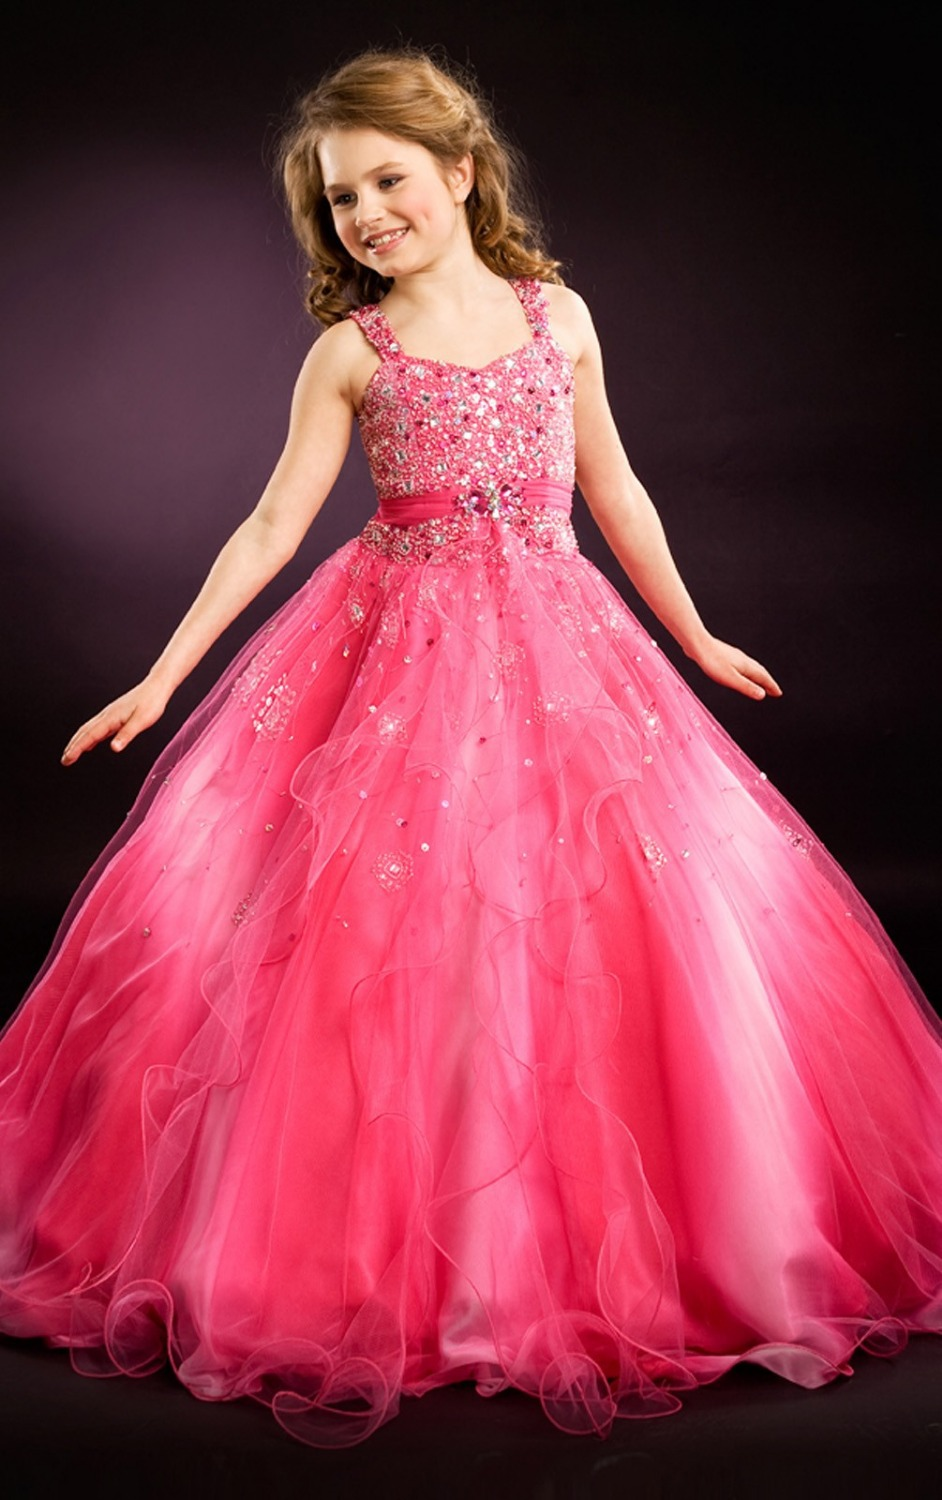 2017 Children Glitz Girls Pageant Dresses Beading Princess Blush Floor Length Girls Pageant Dresses For Kids